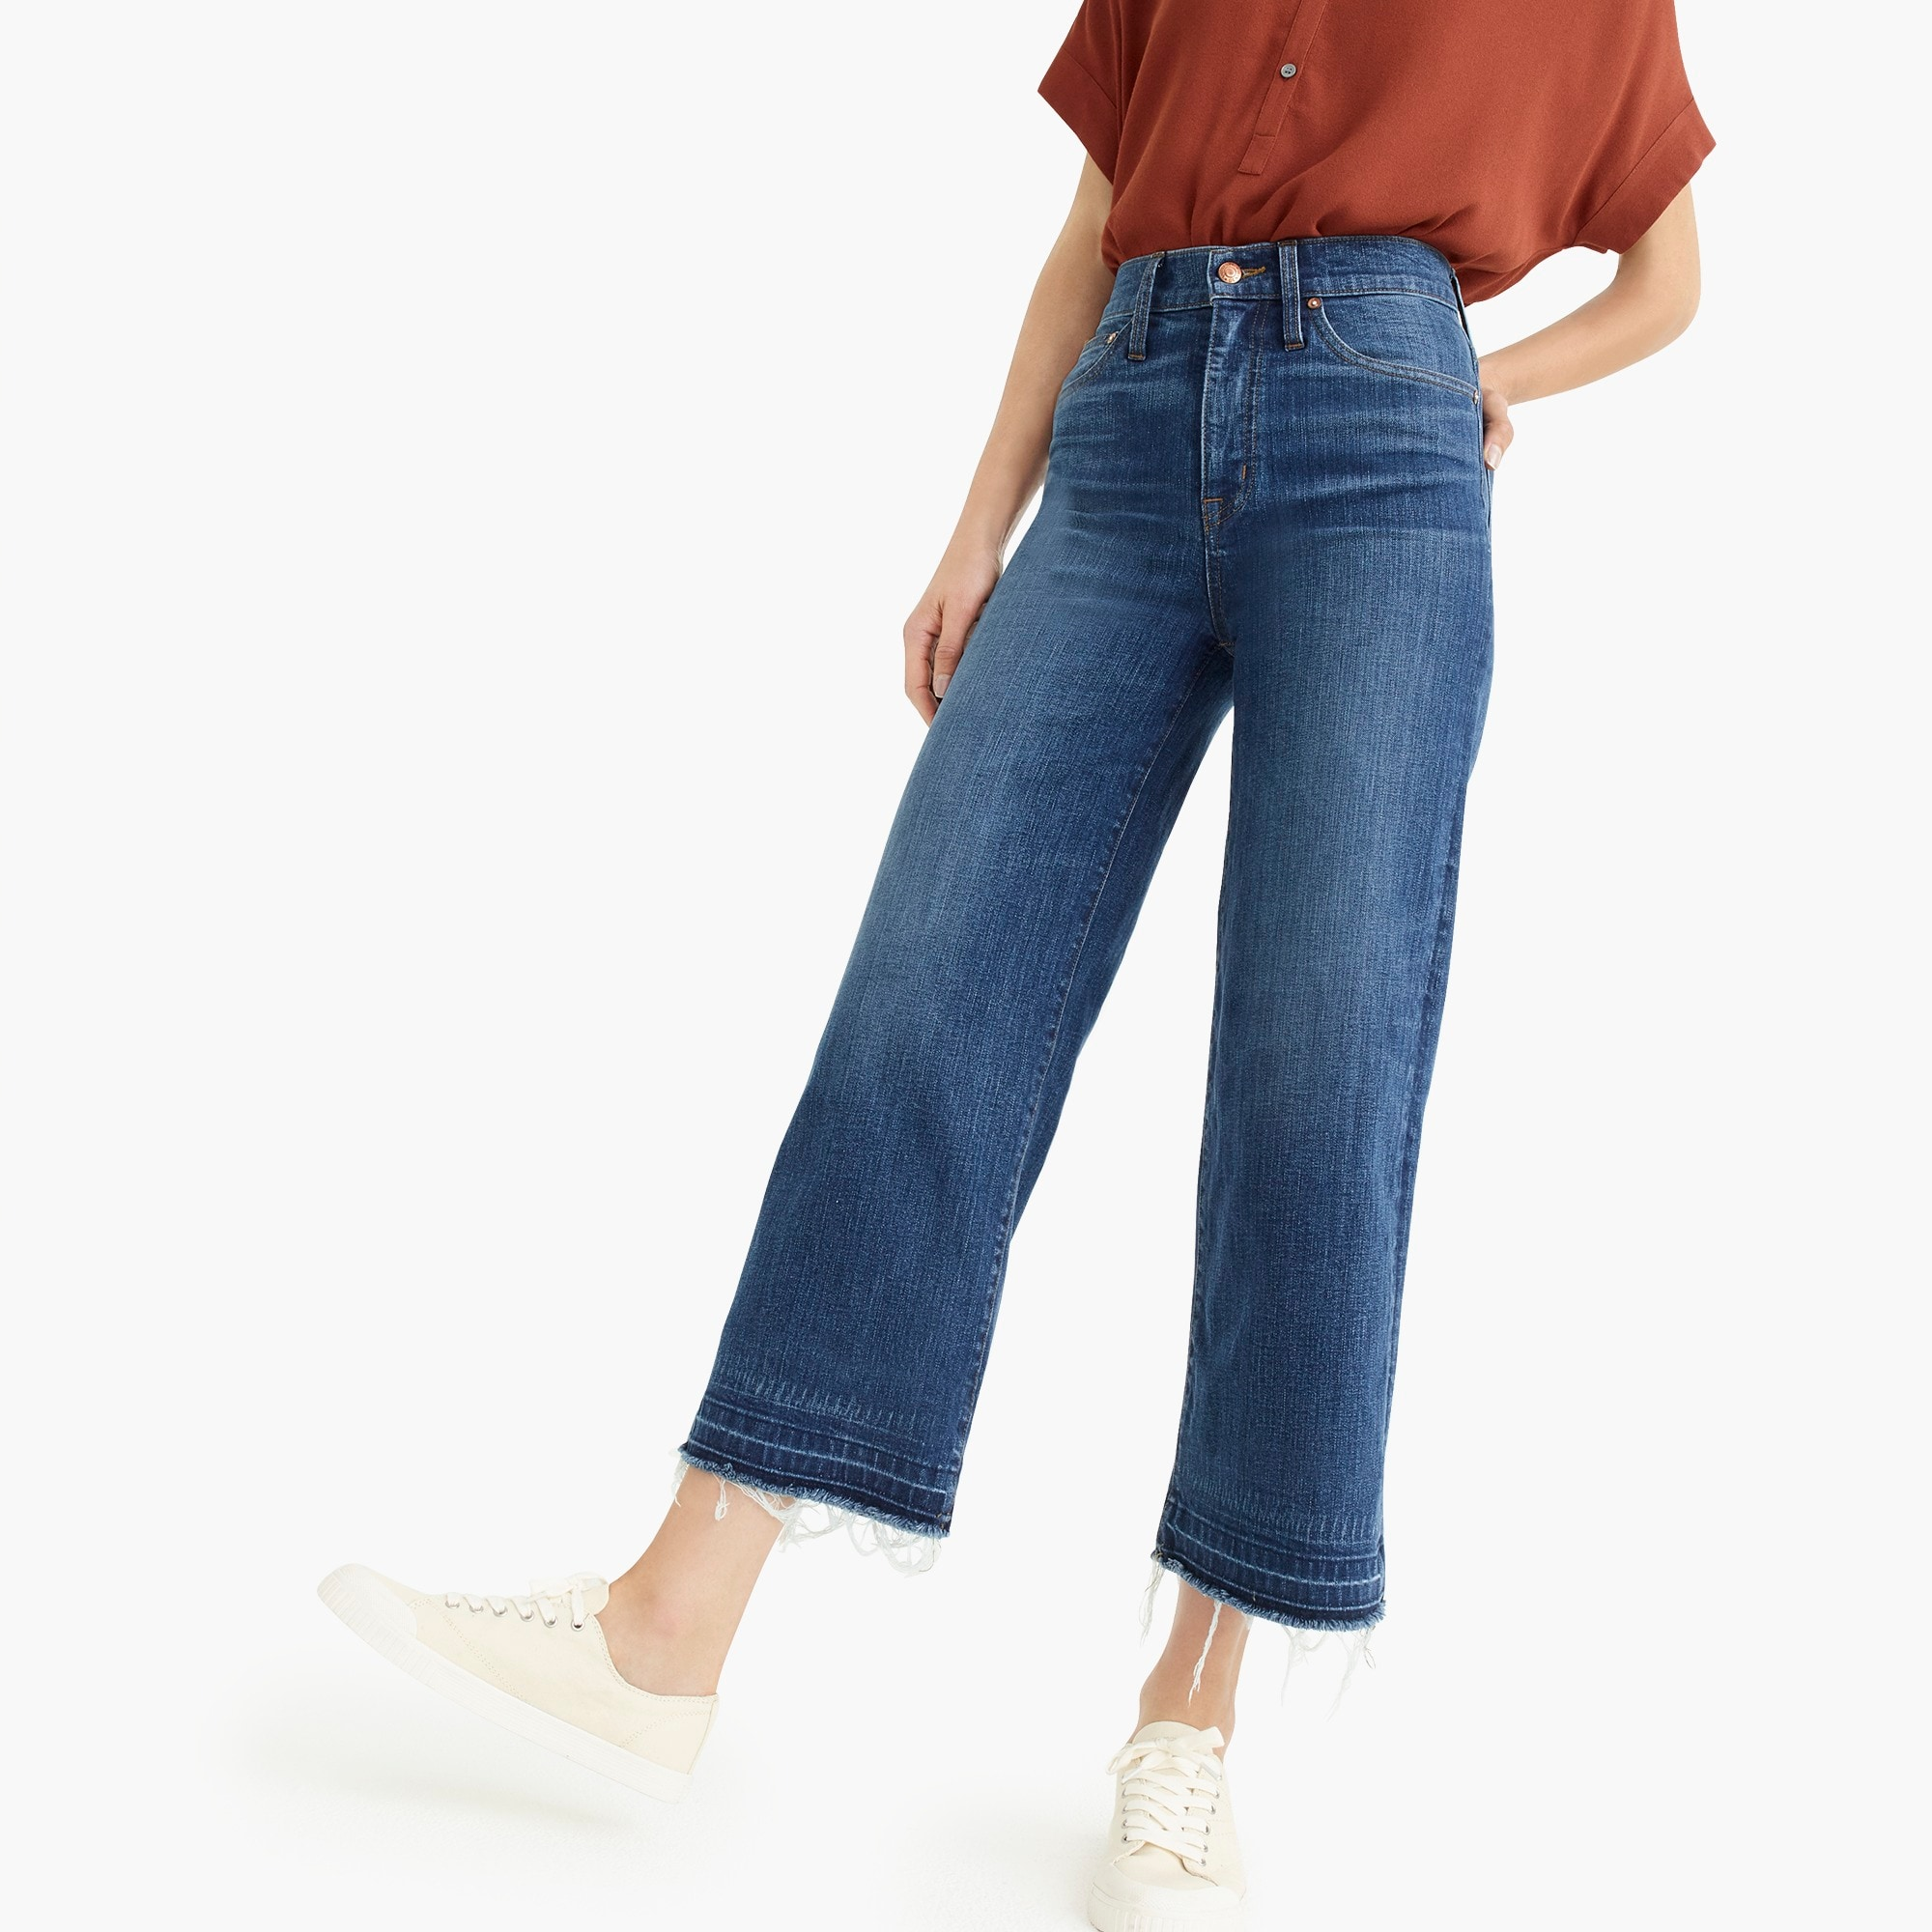 Image 1 for Point Sur wide-leg crop jean with let-down hem